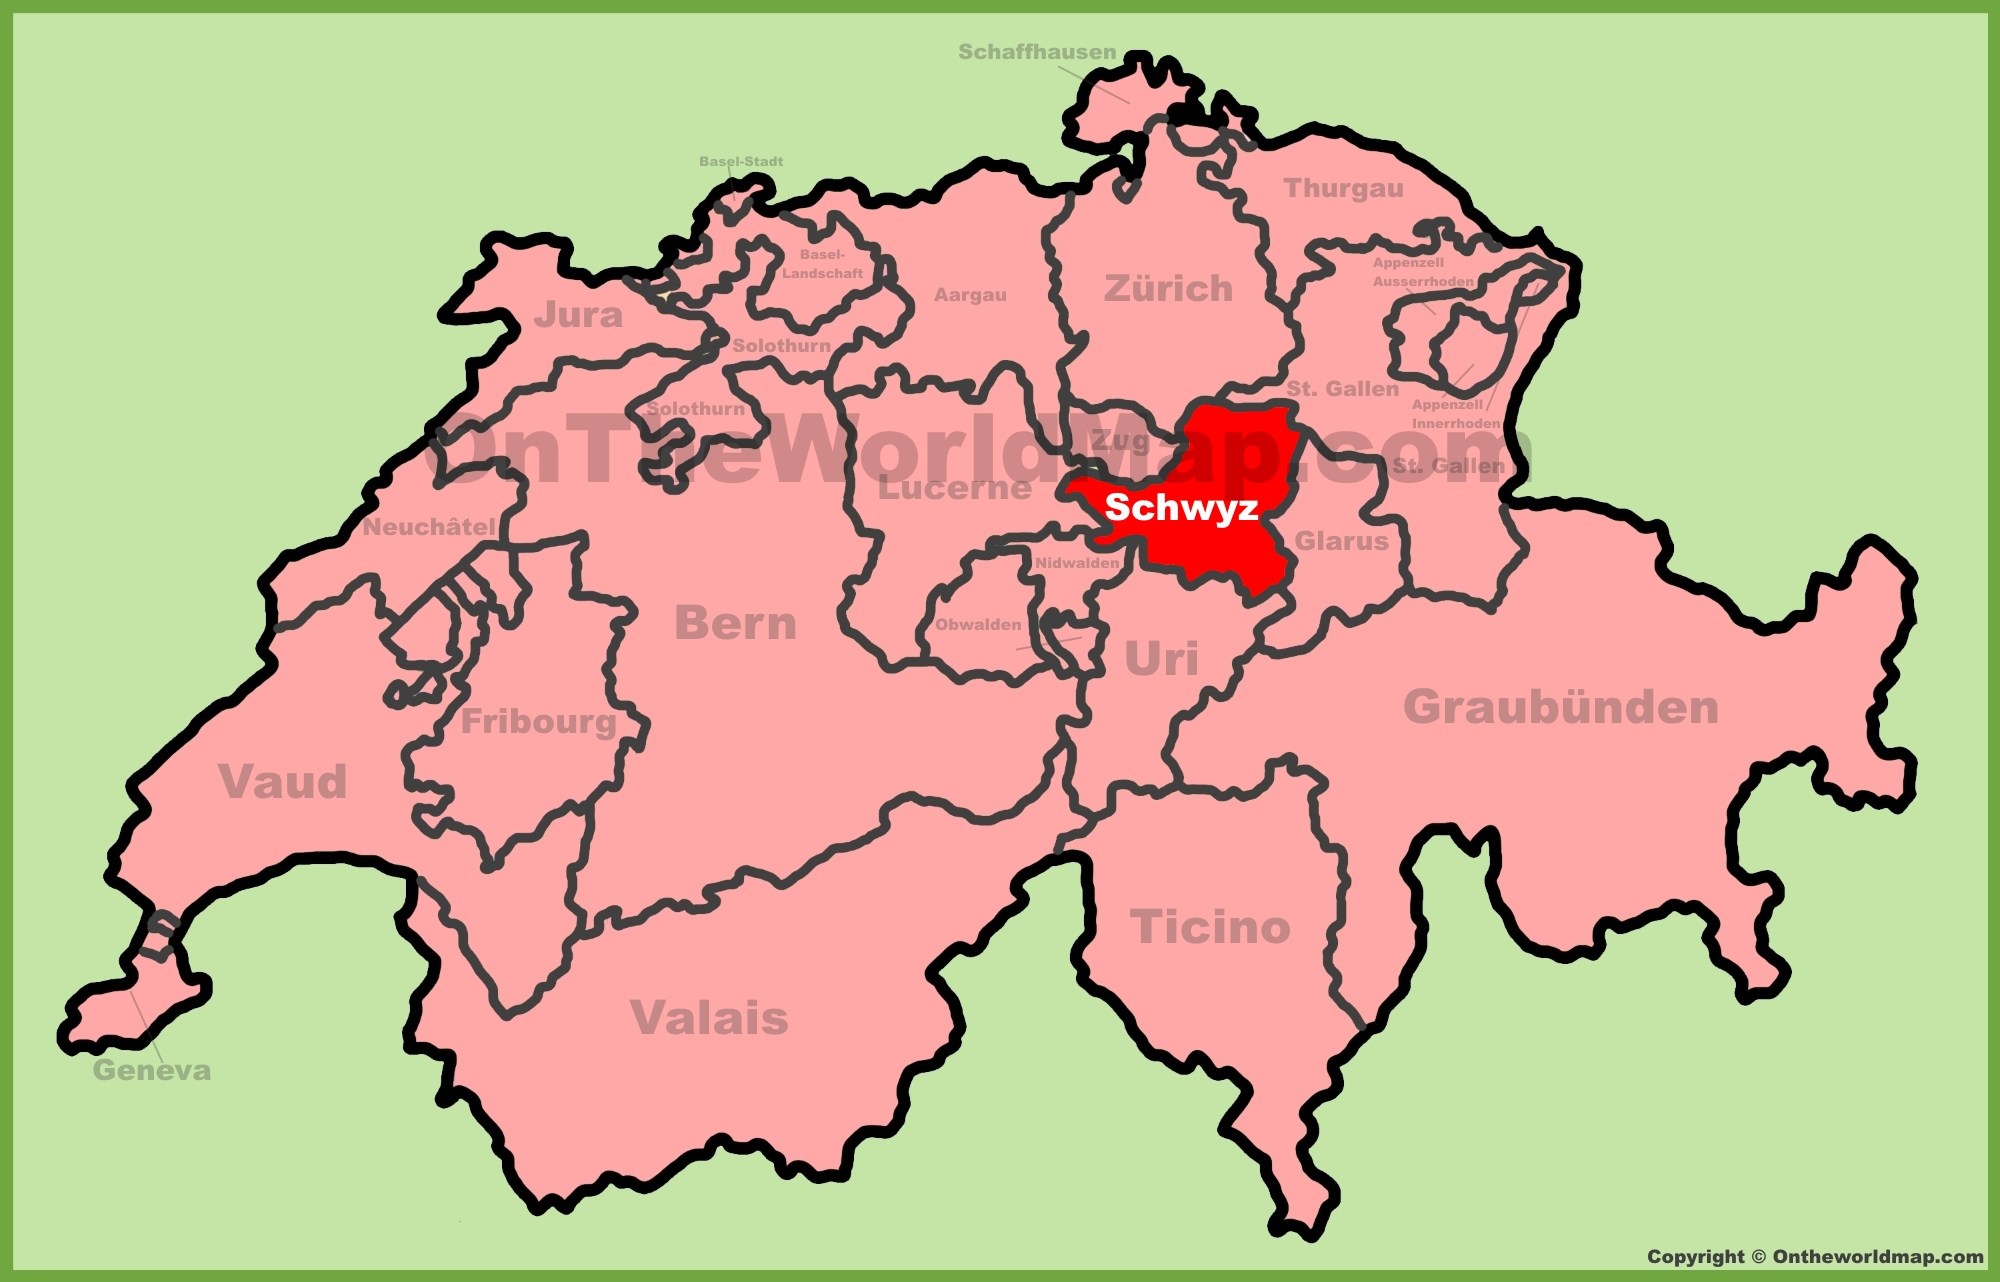 Canton of Schwyz location on the Switzerland map